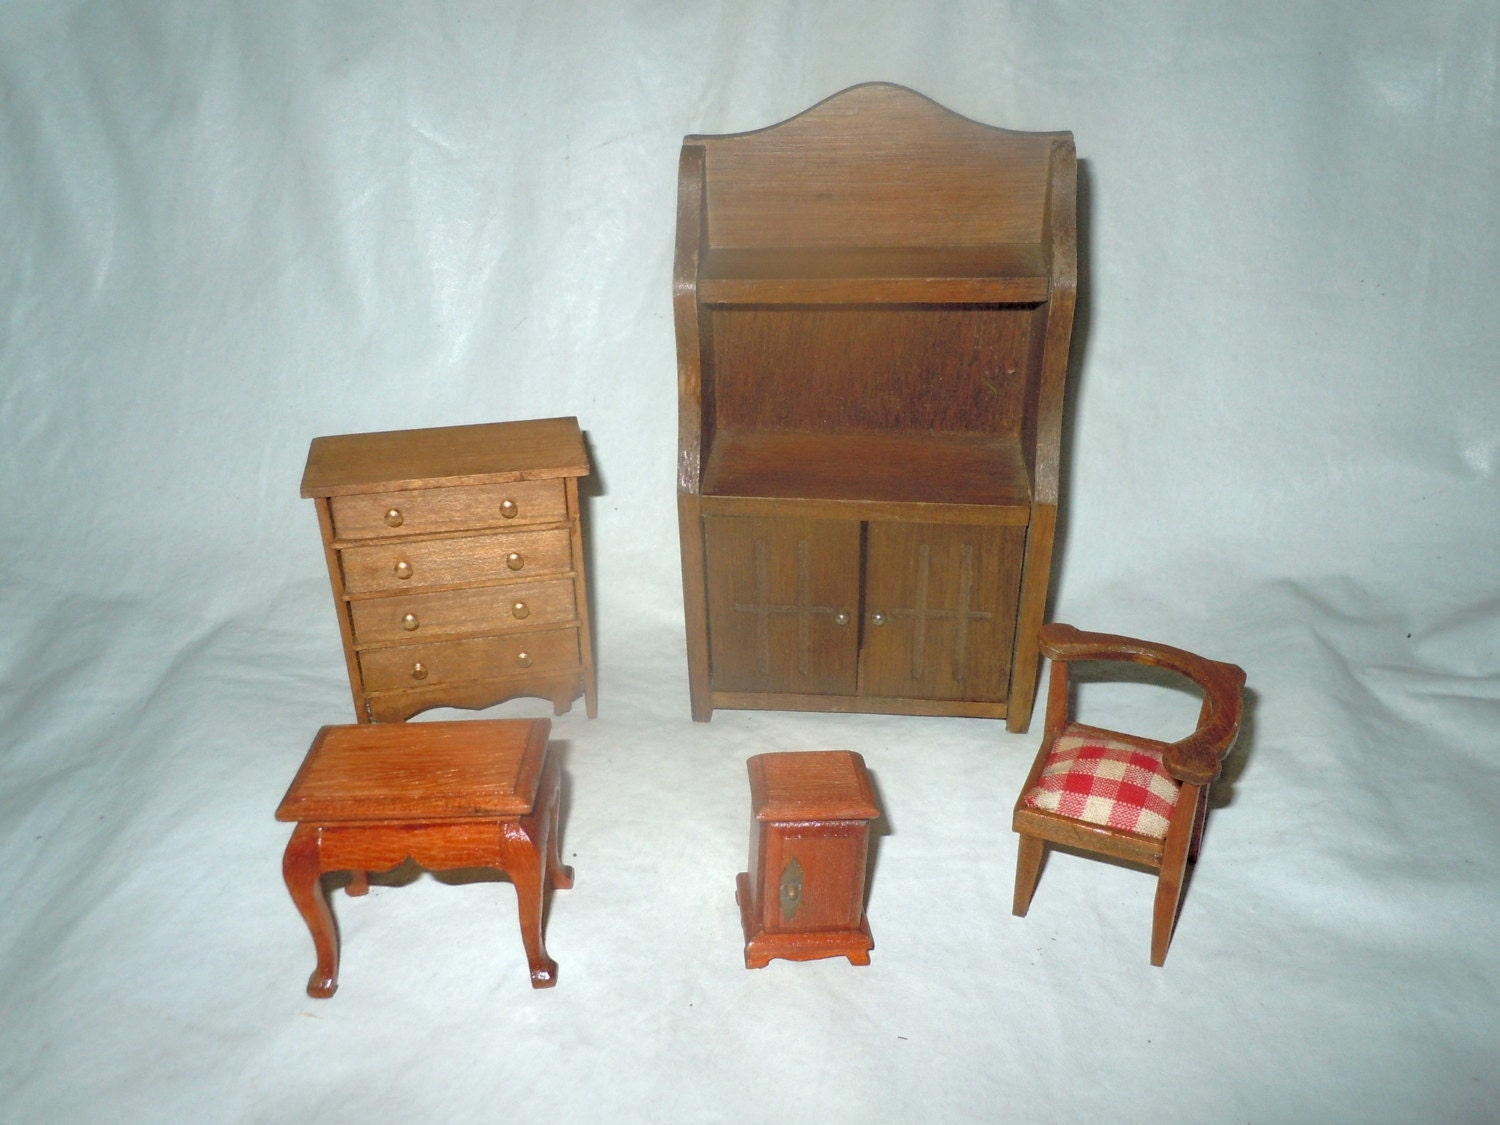 Set of vintage wood dollhouse furniture Dollhouse wooden furniture